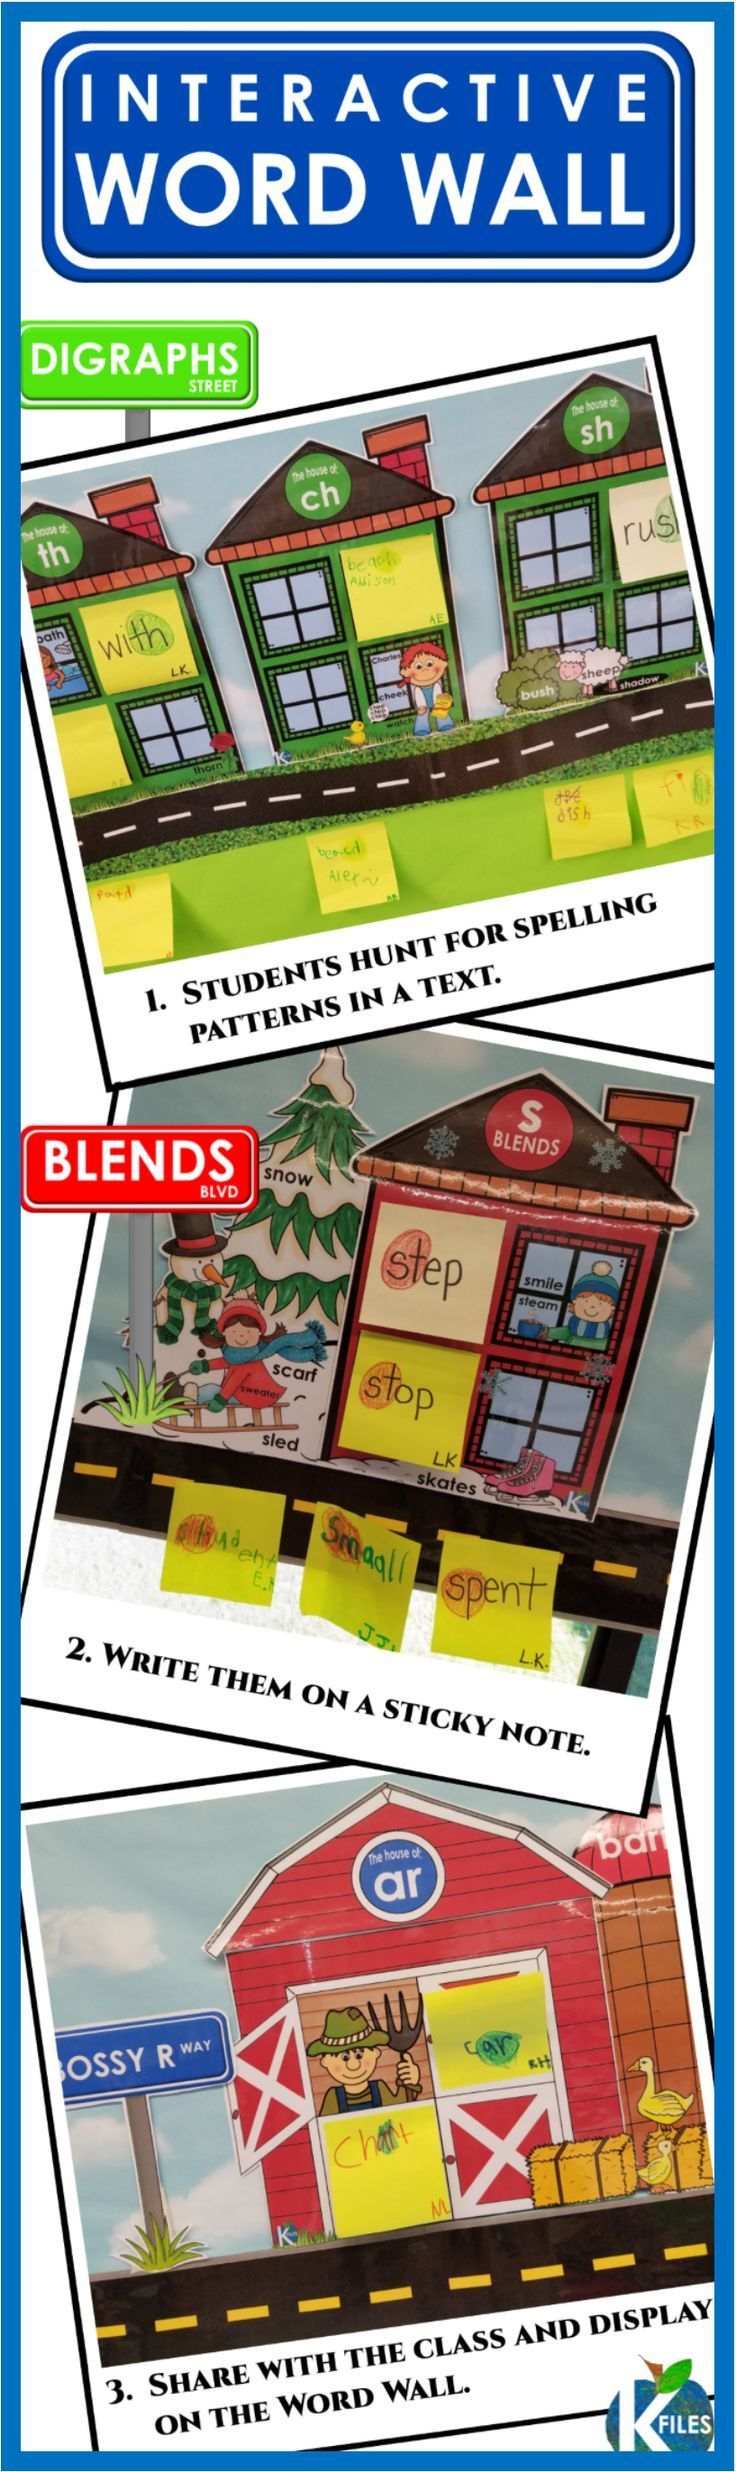 This interactive Word Wall includes word family houses for all phonograms appropriate for the primary grades. This method aligns with Words Their Way, any Spelling program AND differentiated spelling lists. You will no longer worry that your Word Wall is just taking up valuable space in your classroom. I have included a 6-page guide to help you EASILY facilitate and manage your Interactive Word Wall. Perfect for Daily 5, literacy centers, Reader's Workshop, Writer's workshop & Spelling…